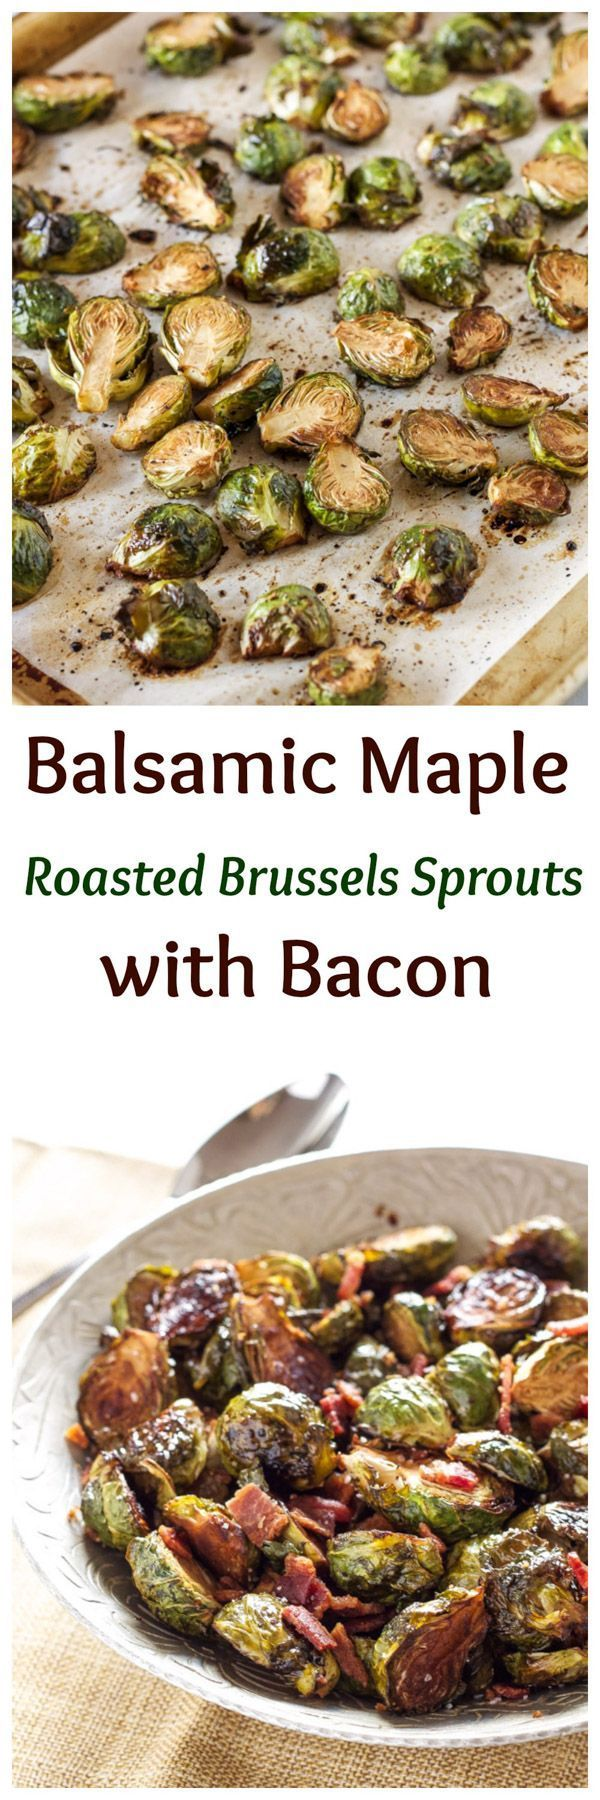 Balsamic Maple Roasted Brussels Sprouts   Recipe Runner   Balsamic, maple, and bacon are the perfect combination of flavors for these roasted Brussels sprouts!